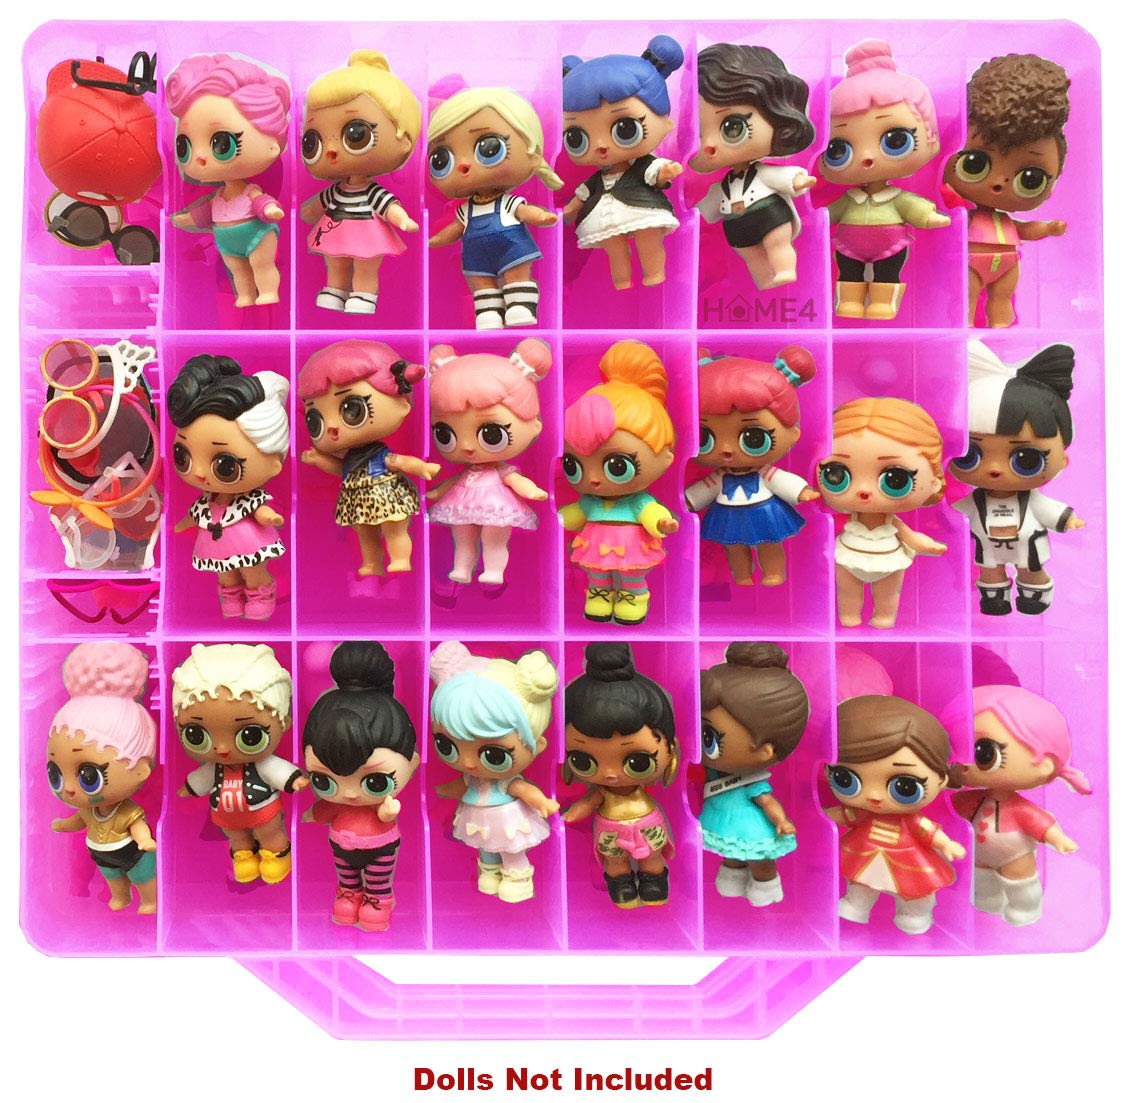 HOME4 Double Sided Storage Container - Toy Organizer Case - 48 Compartments - Perfect for Small Dolls and Toys - Dolls Not Included (Pink)